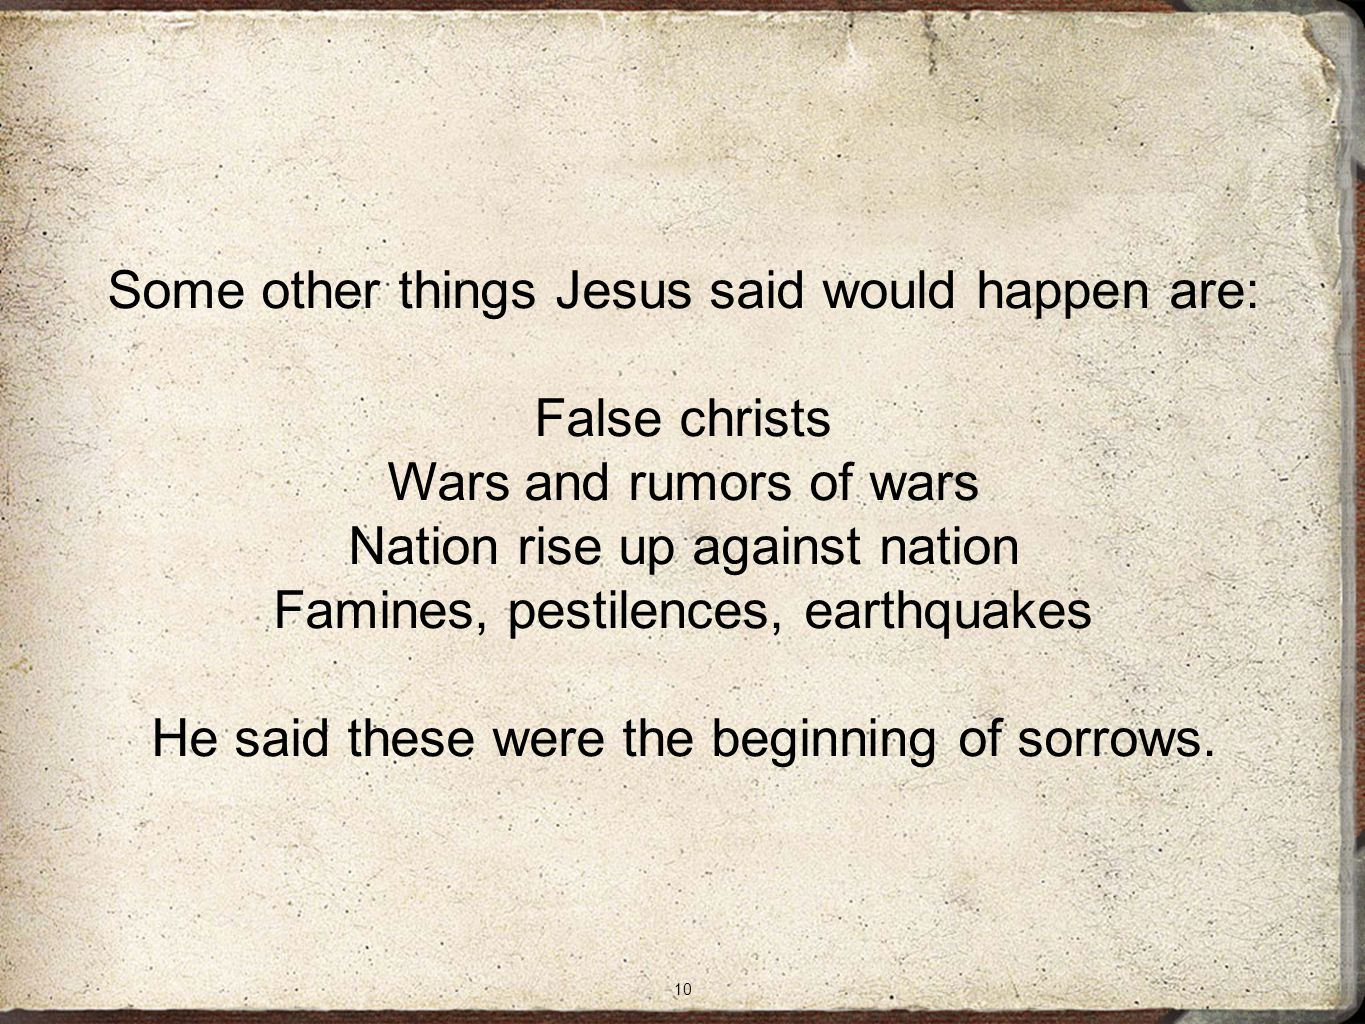 10 Some other things Jesus said would happen are: False christs Wars and rumors of wars Nation rise up against nation Famines, pestilences, earthquakes He said these were the beginning of sorrows.